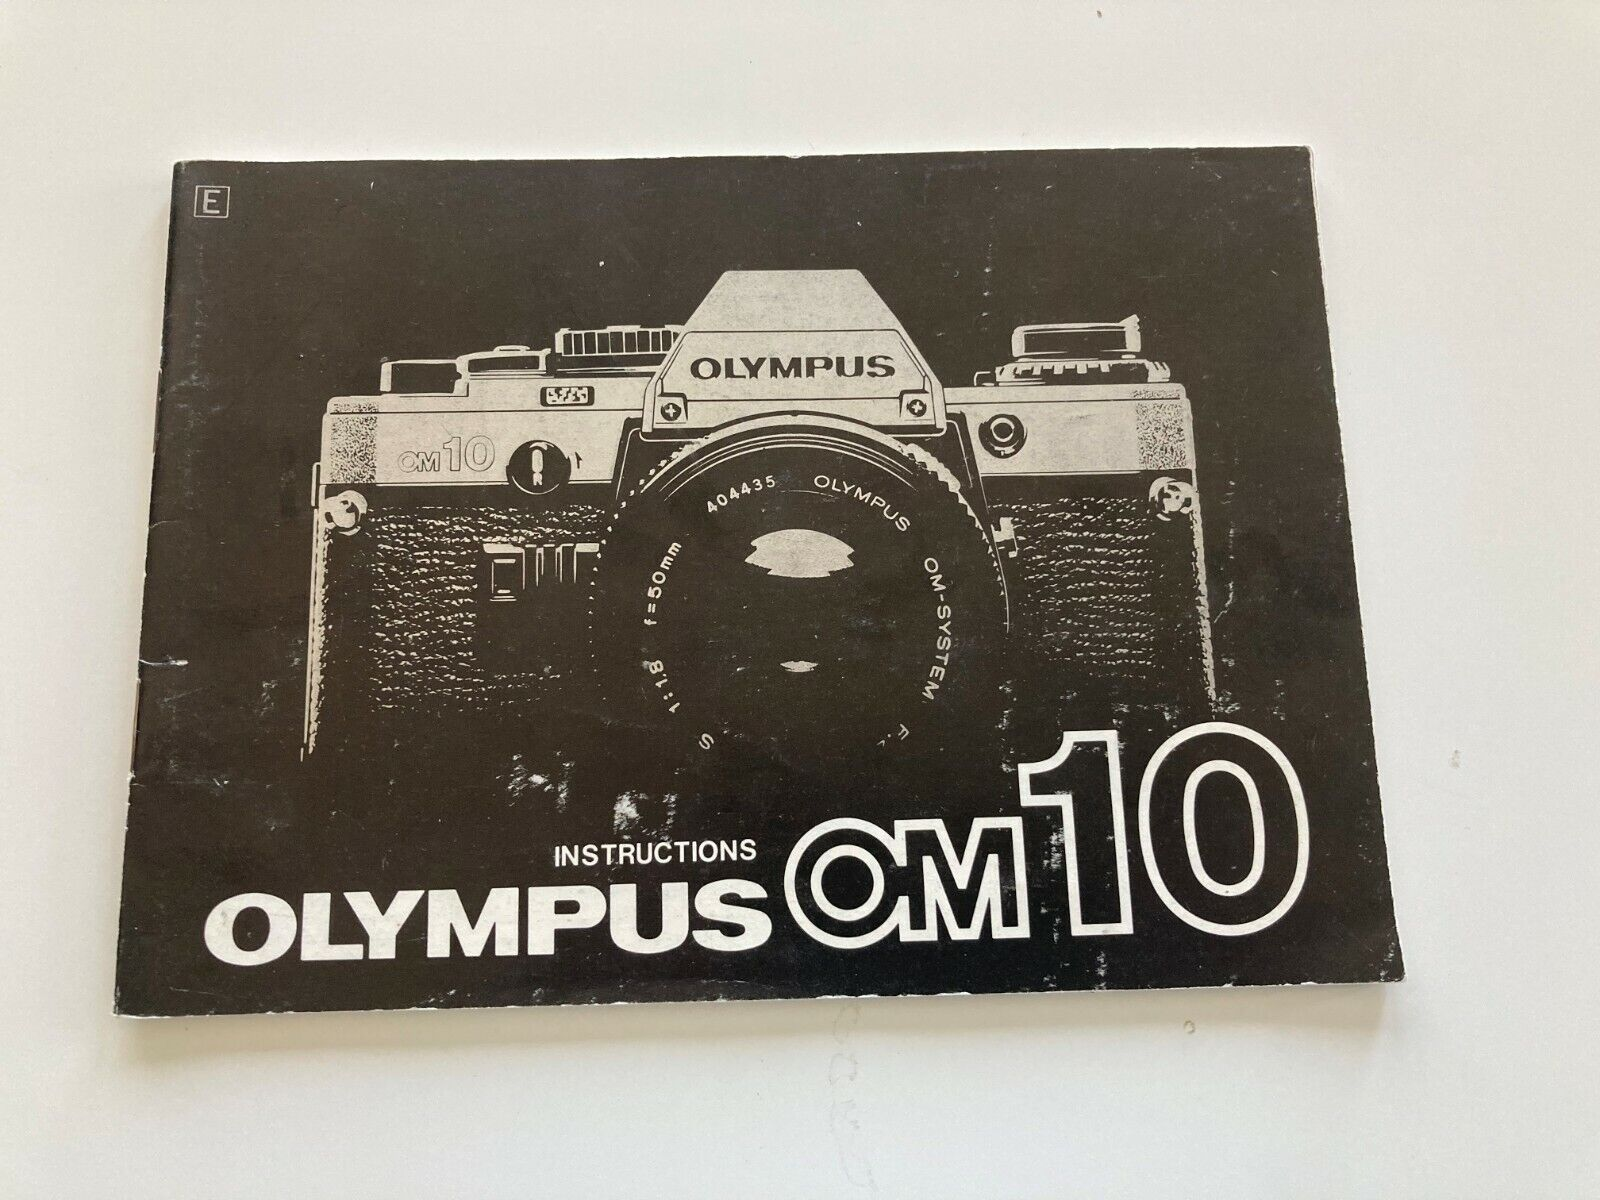 Olympus OM-10 Instruction / Owner s Manual - Free Shipping - $7.50